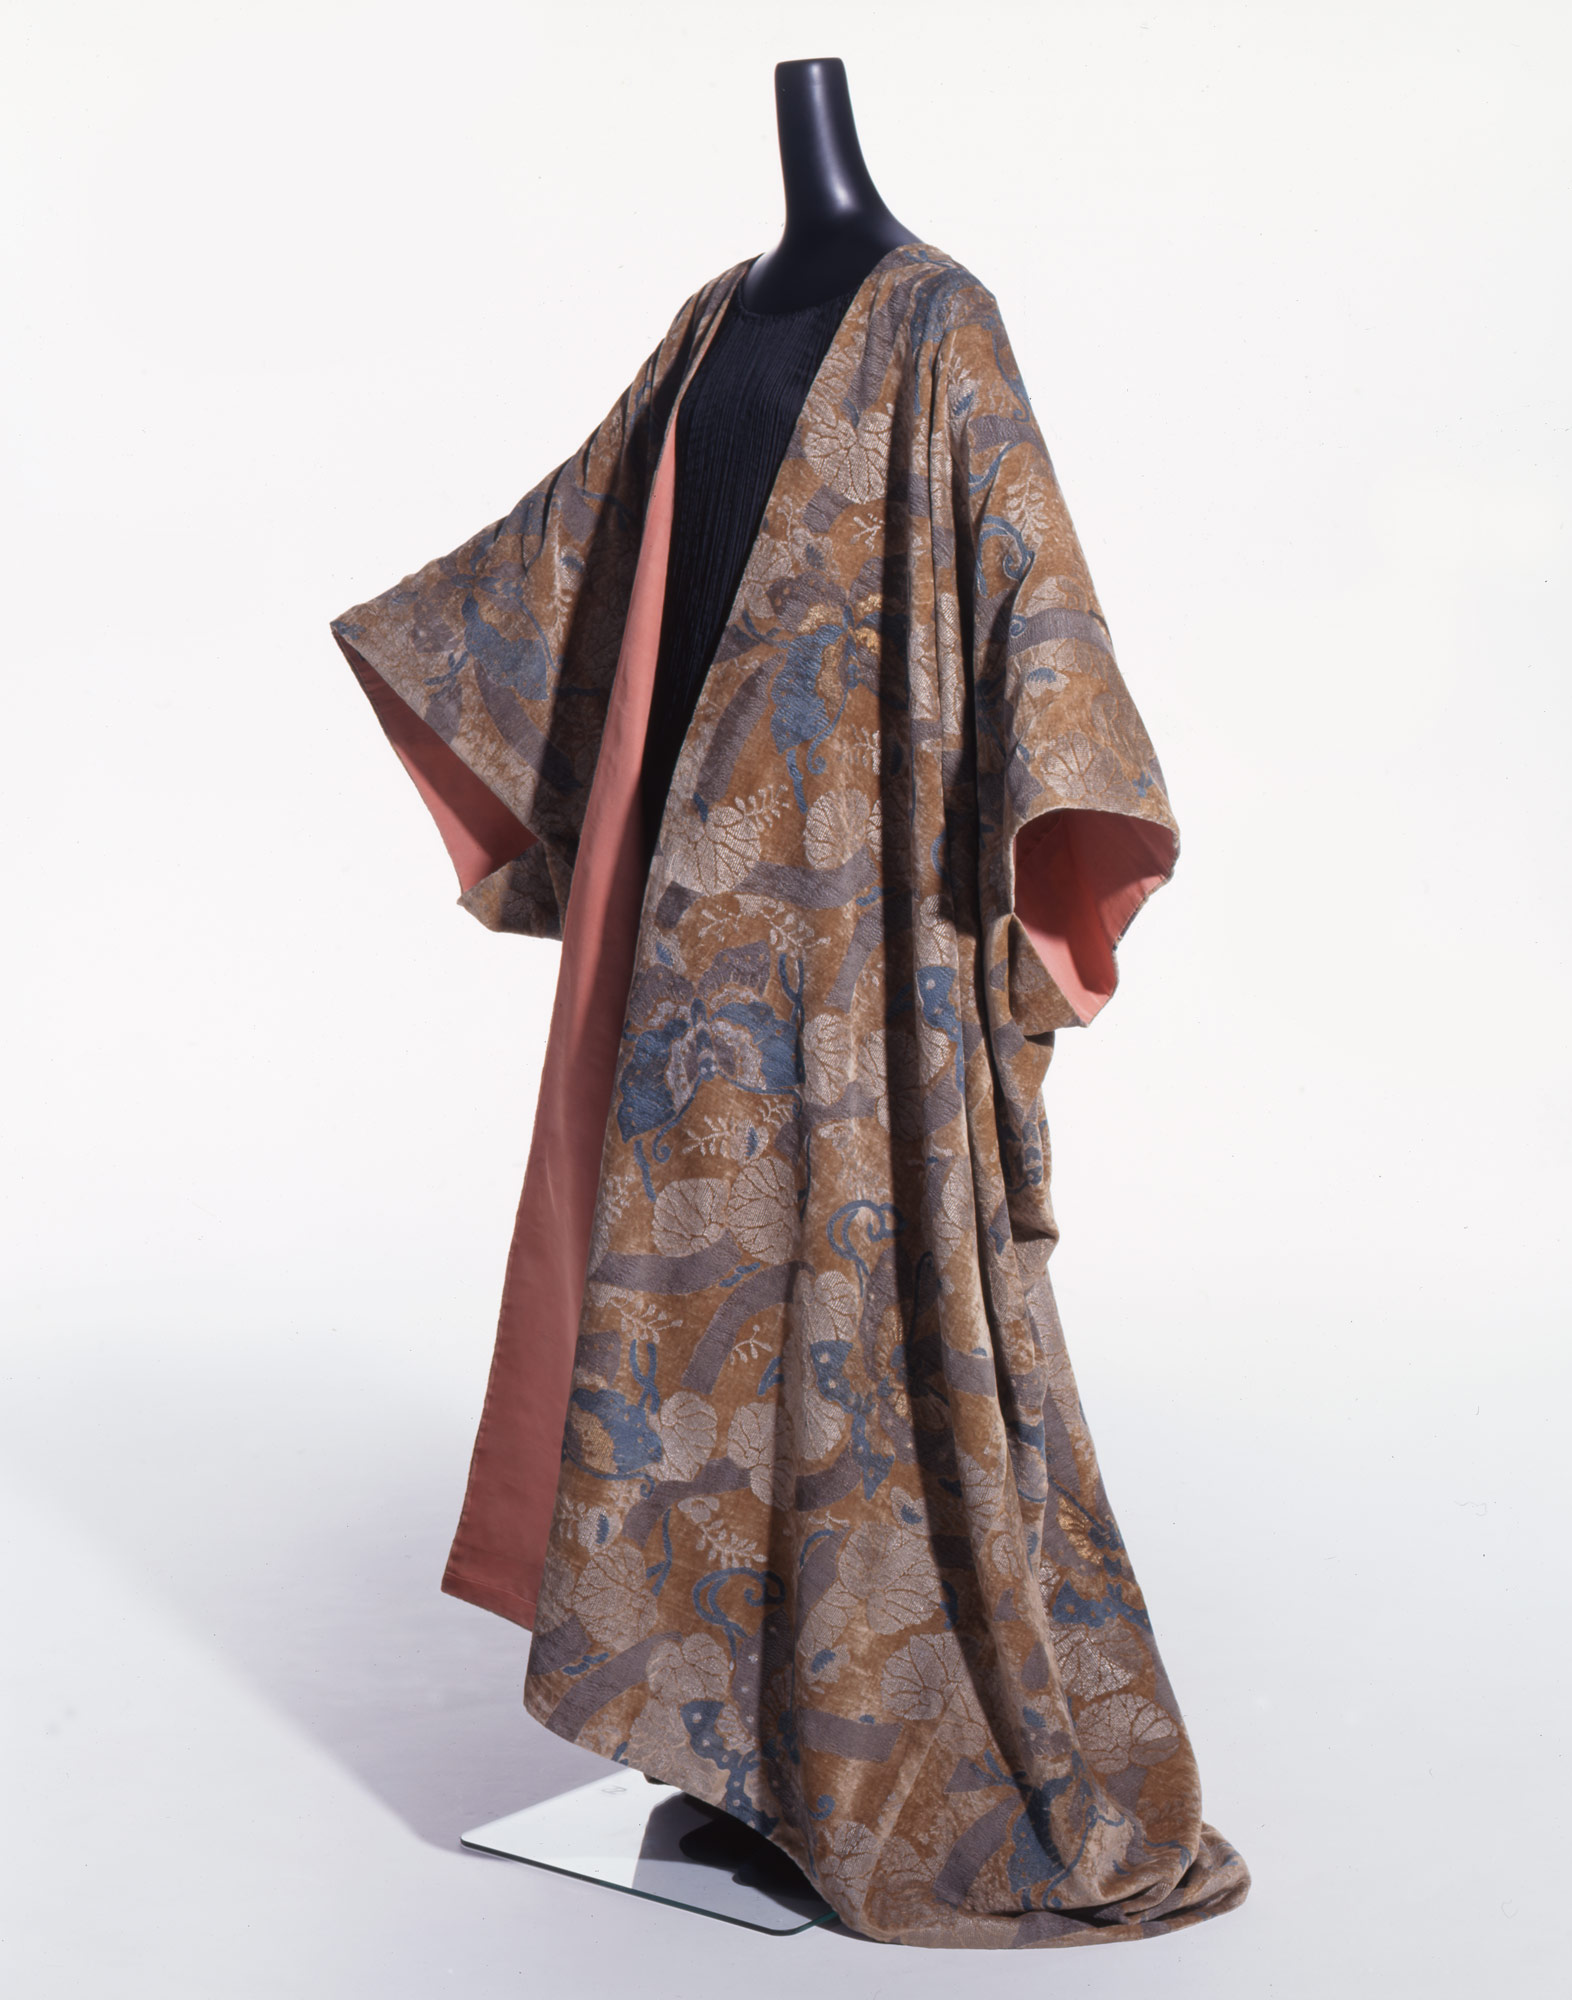 Kimono Dress by Mariano Fortuny